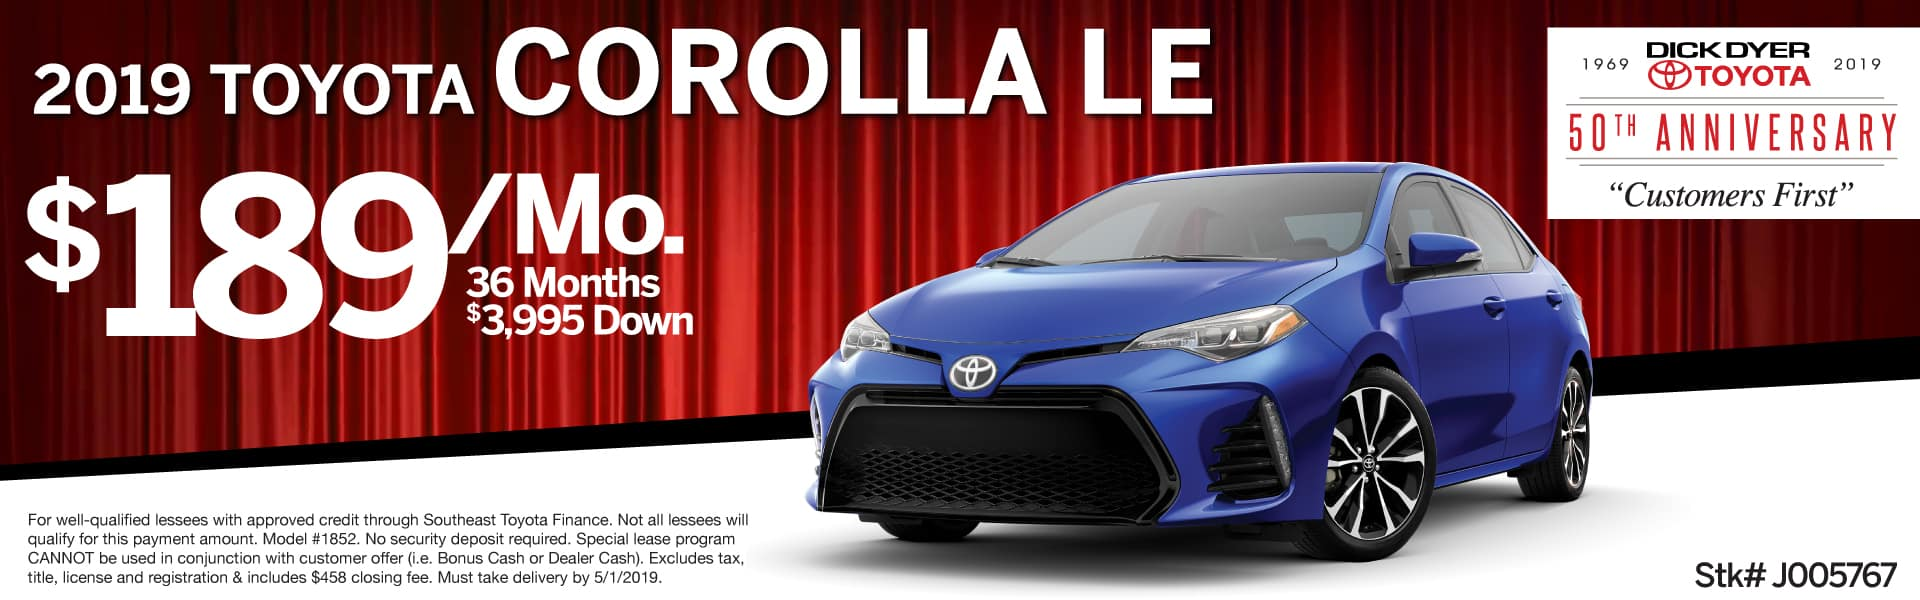 2019 Toyota Corolla Le for Lease Columbia